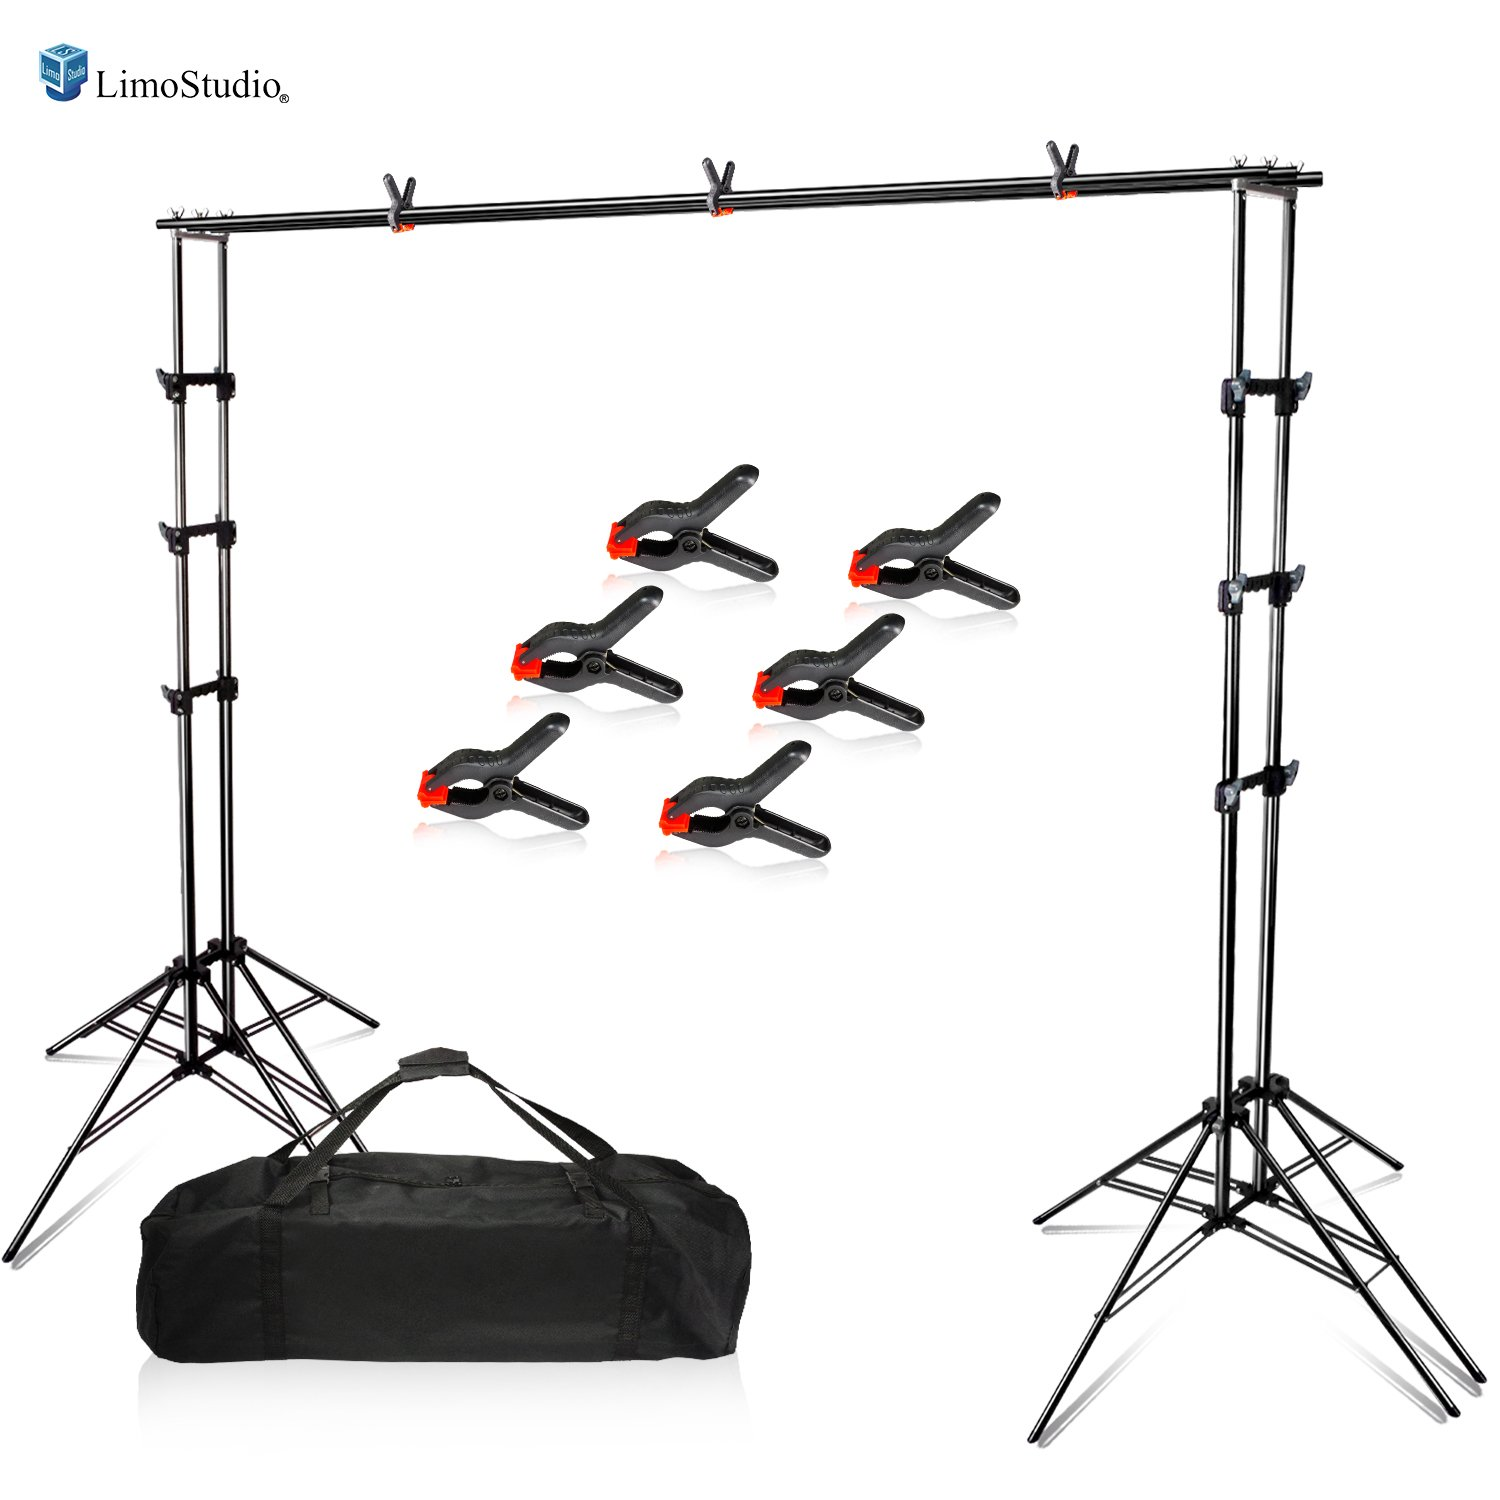 LimoStudio Photography Backdrop Sexapod Support System Stand with 6-Legged Support Stands, Max 10 ft. Cross Bar Sets, Spring Clamps, and Carry Bag for Photo Video Studio, AGG2669